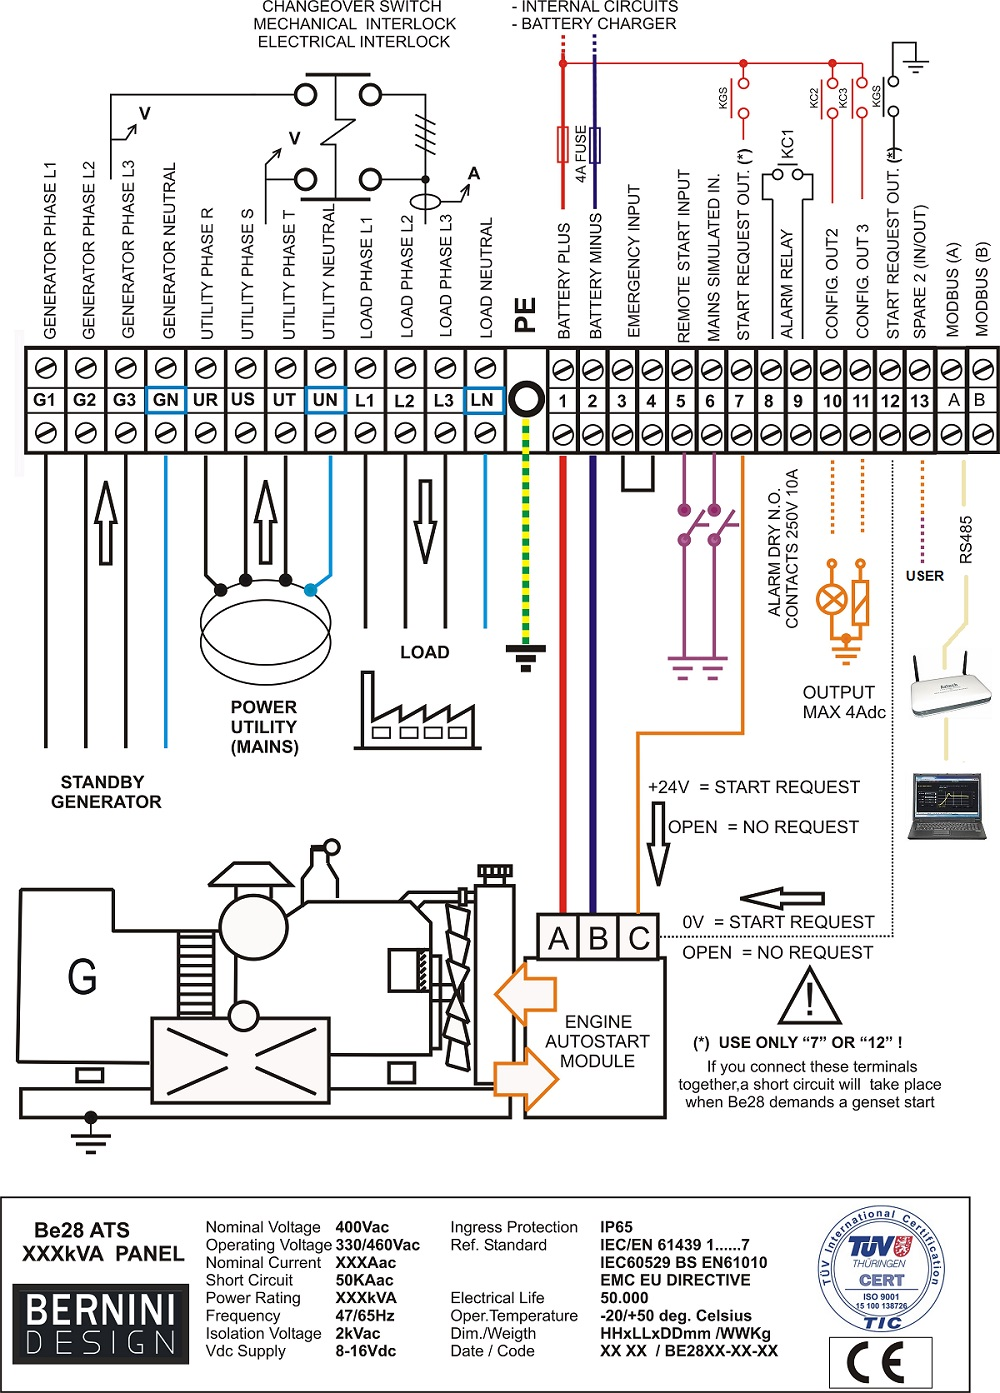 automatic transfer switch wiring diagram genset controller rh bernini design com automatic transfer switch wiring connection automatic transfer switch wiring schematic